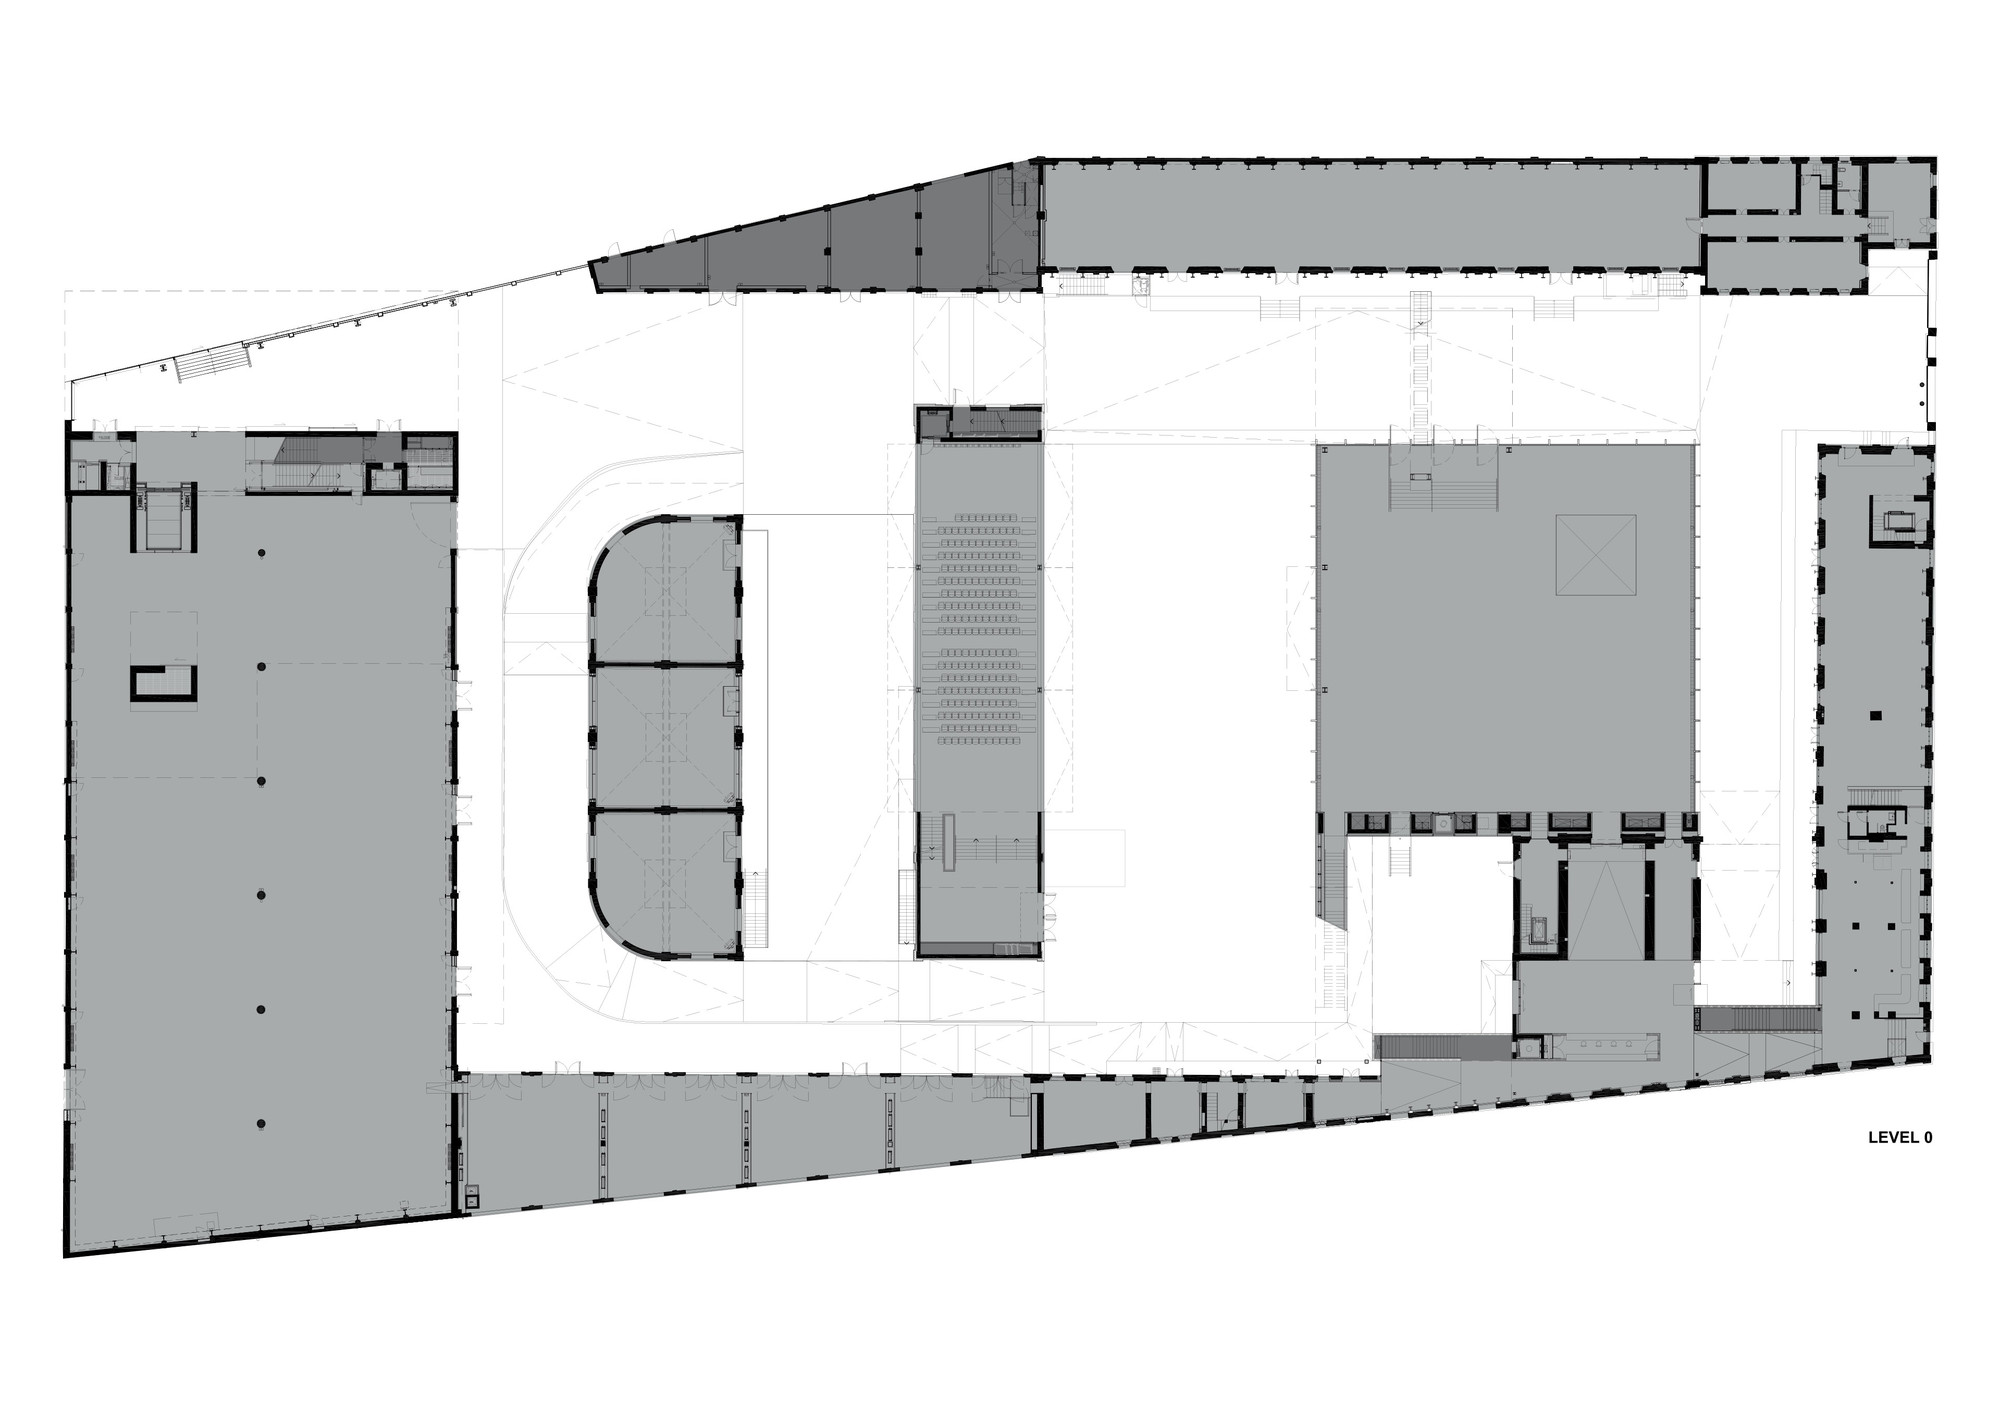 67c82f4b3f413 Ground Floor Plan - © OMA